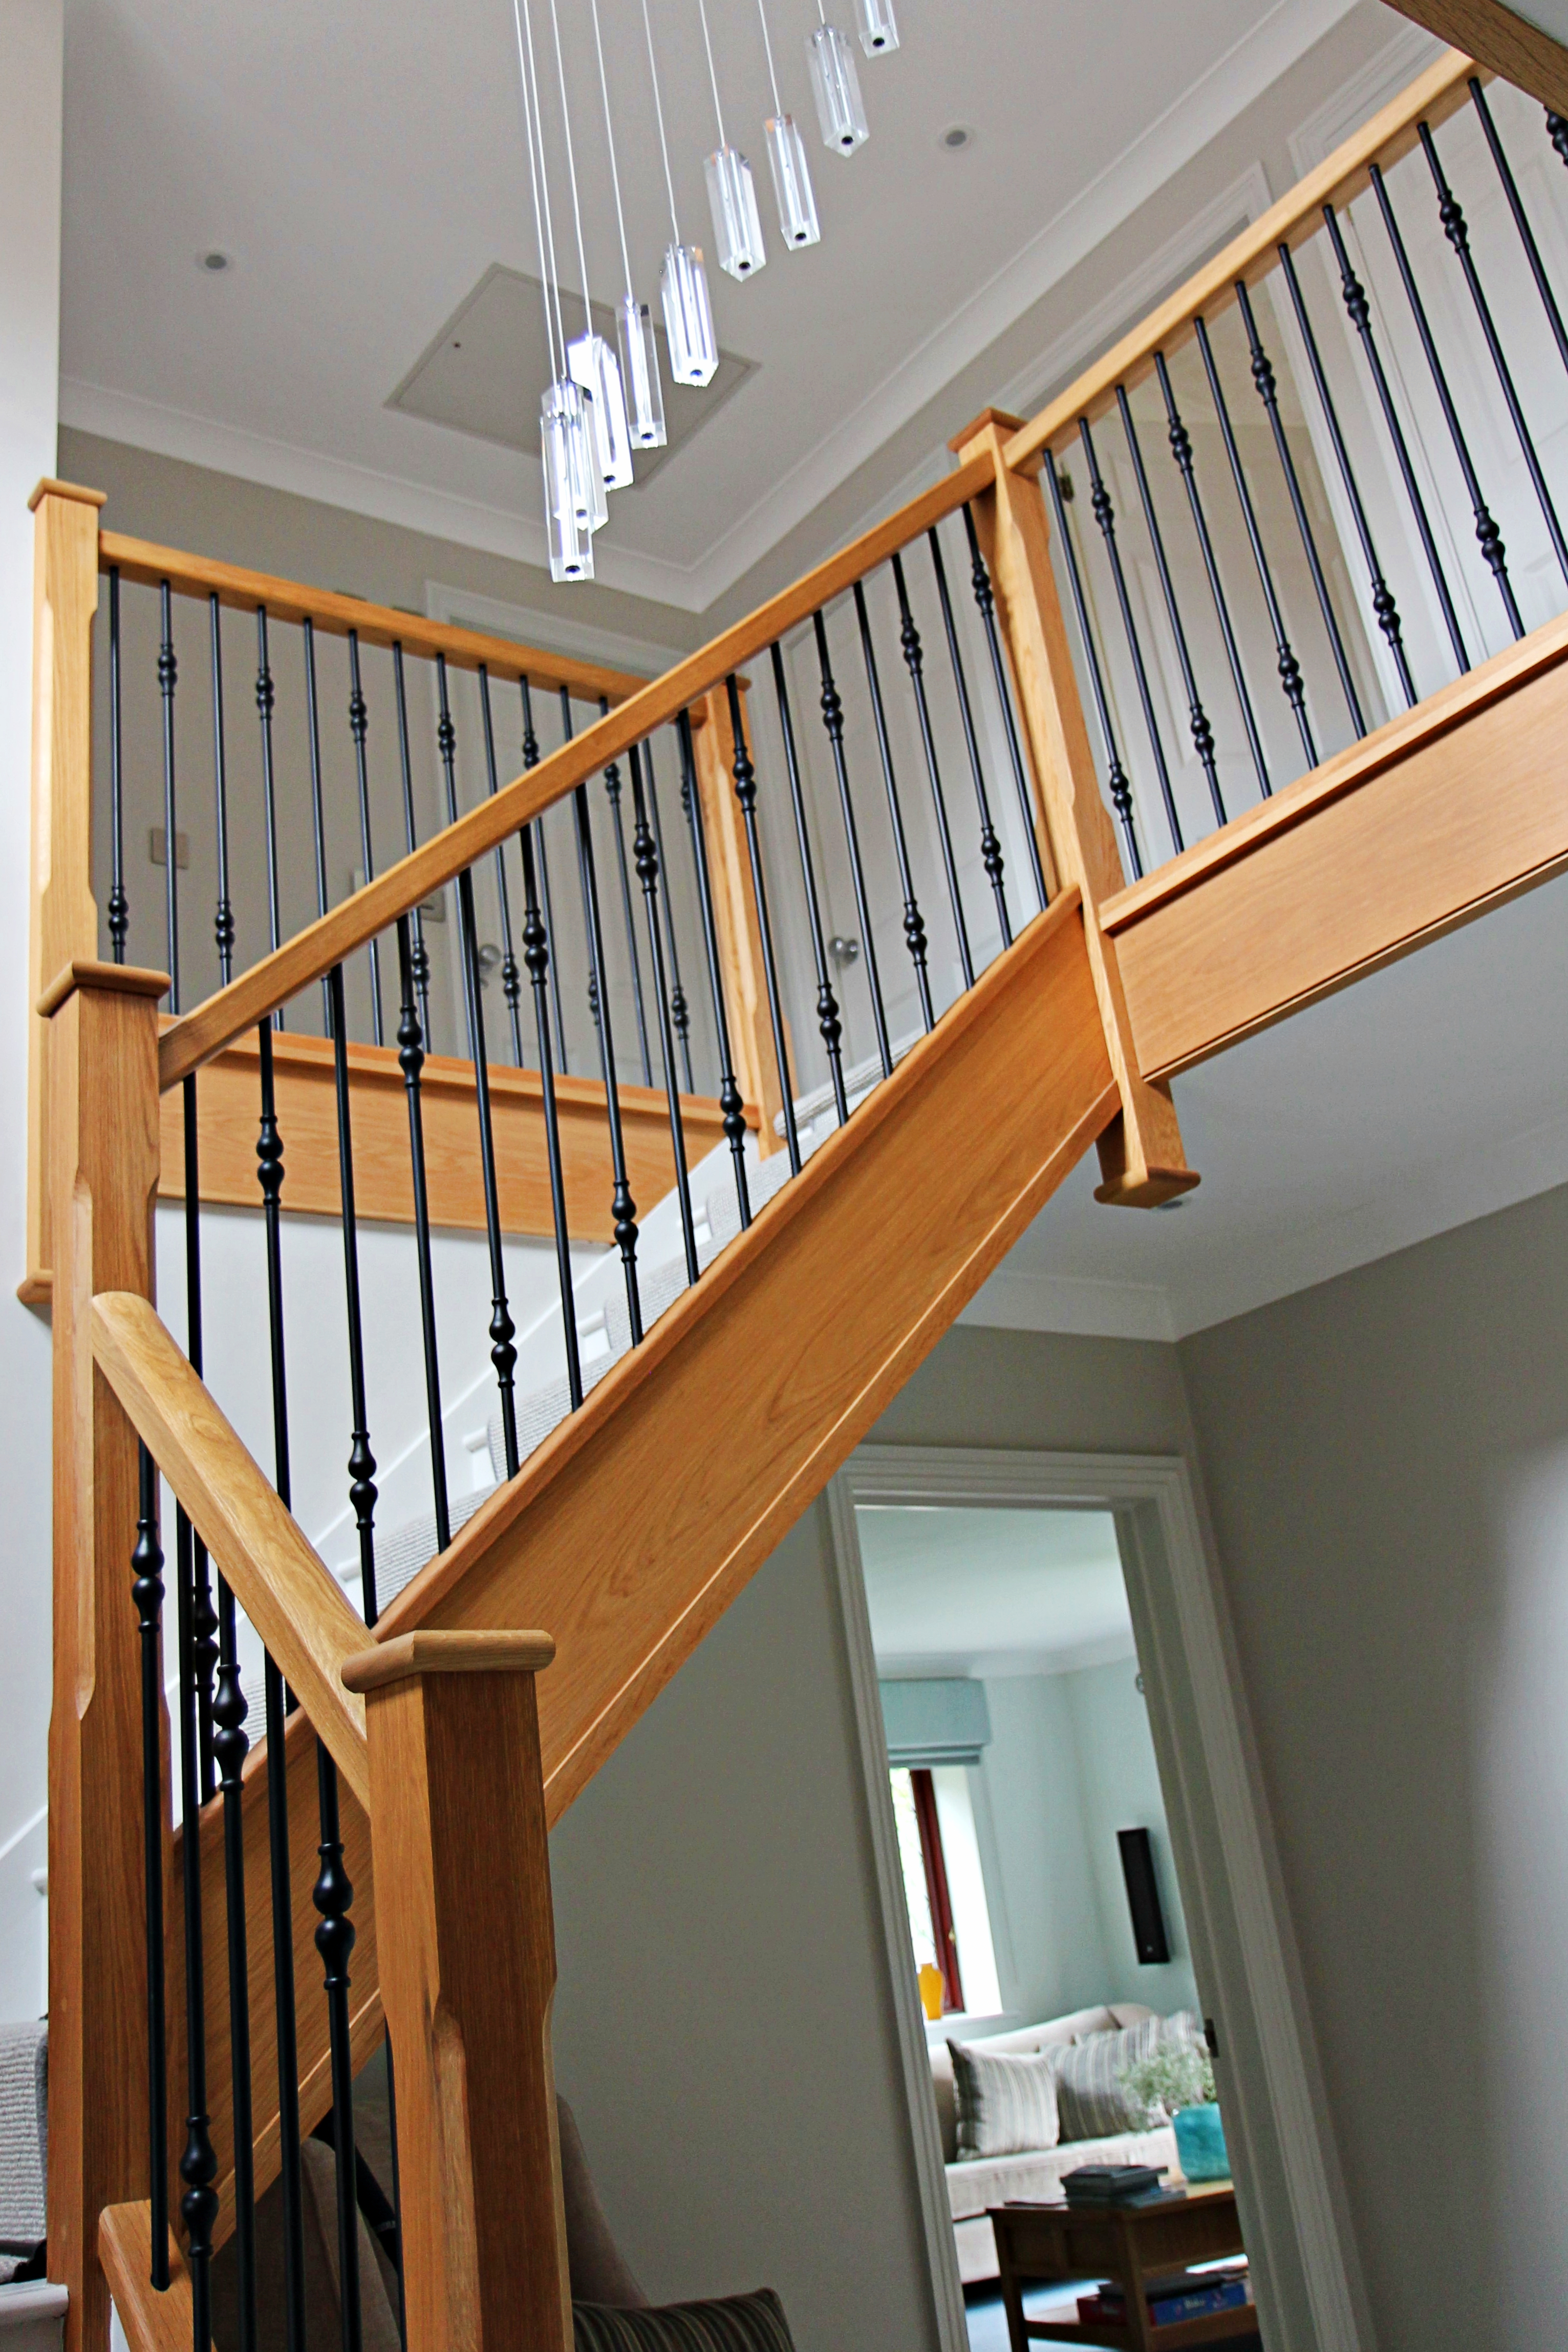 Bespoke Staircase for Hallway